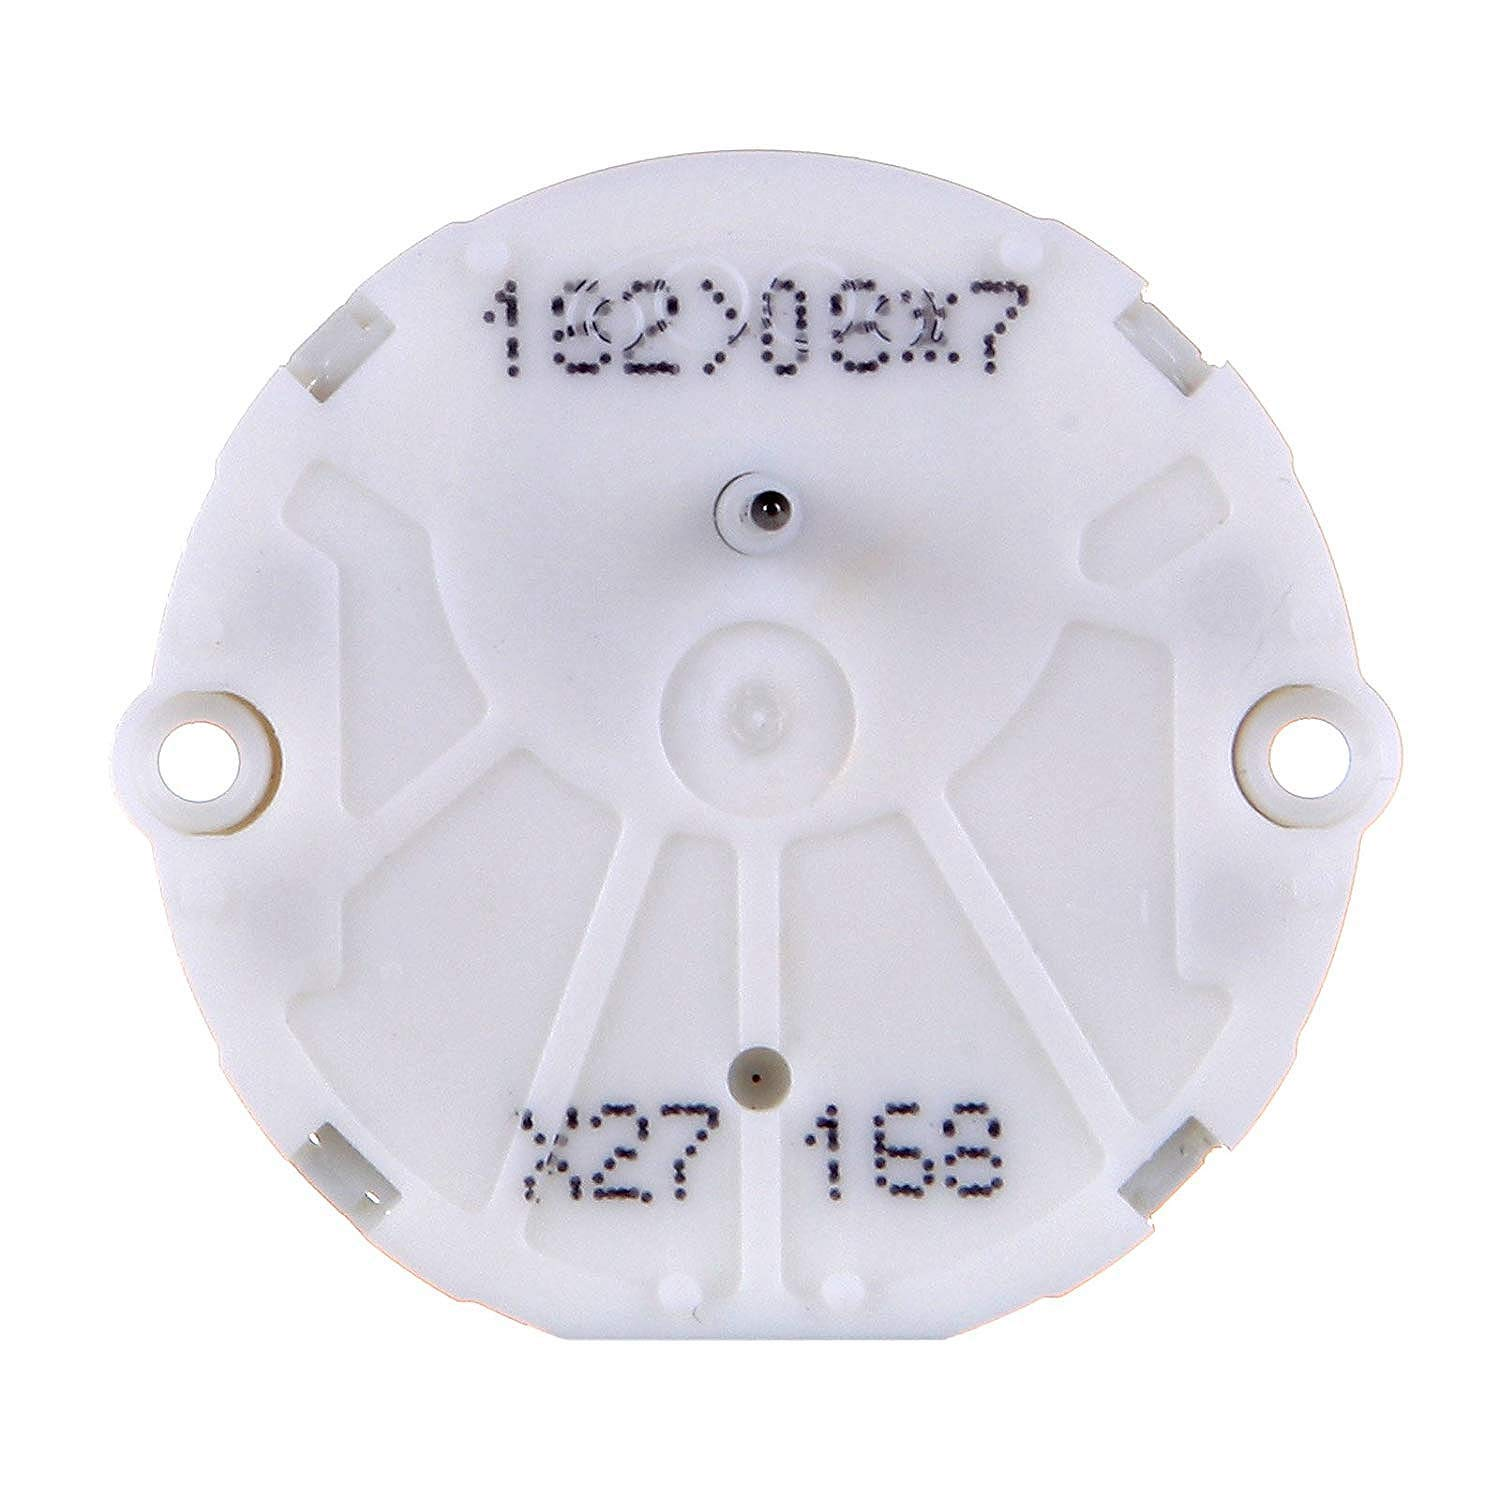 1 Pack Shumo Stepper Motor X27 168 Instrument Cluster Repair Speedometer Gauge Replacement Fit For Chevy